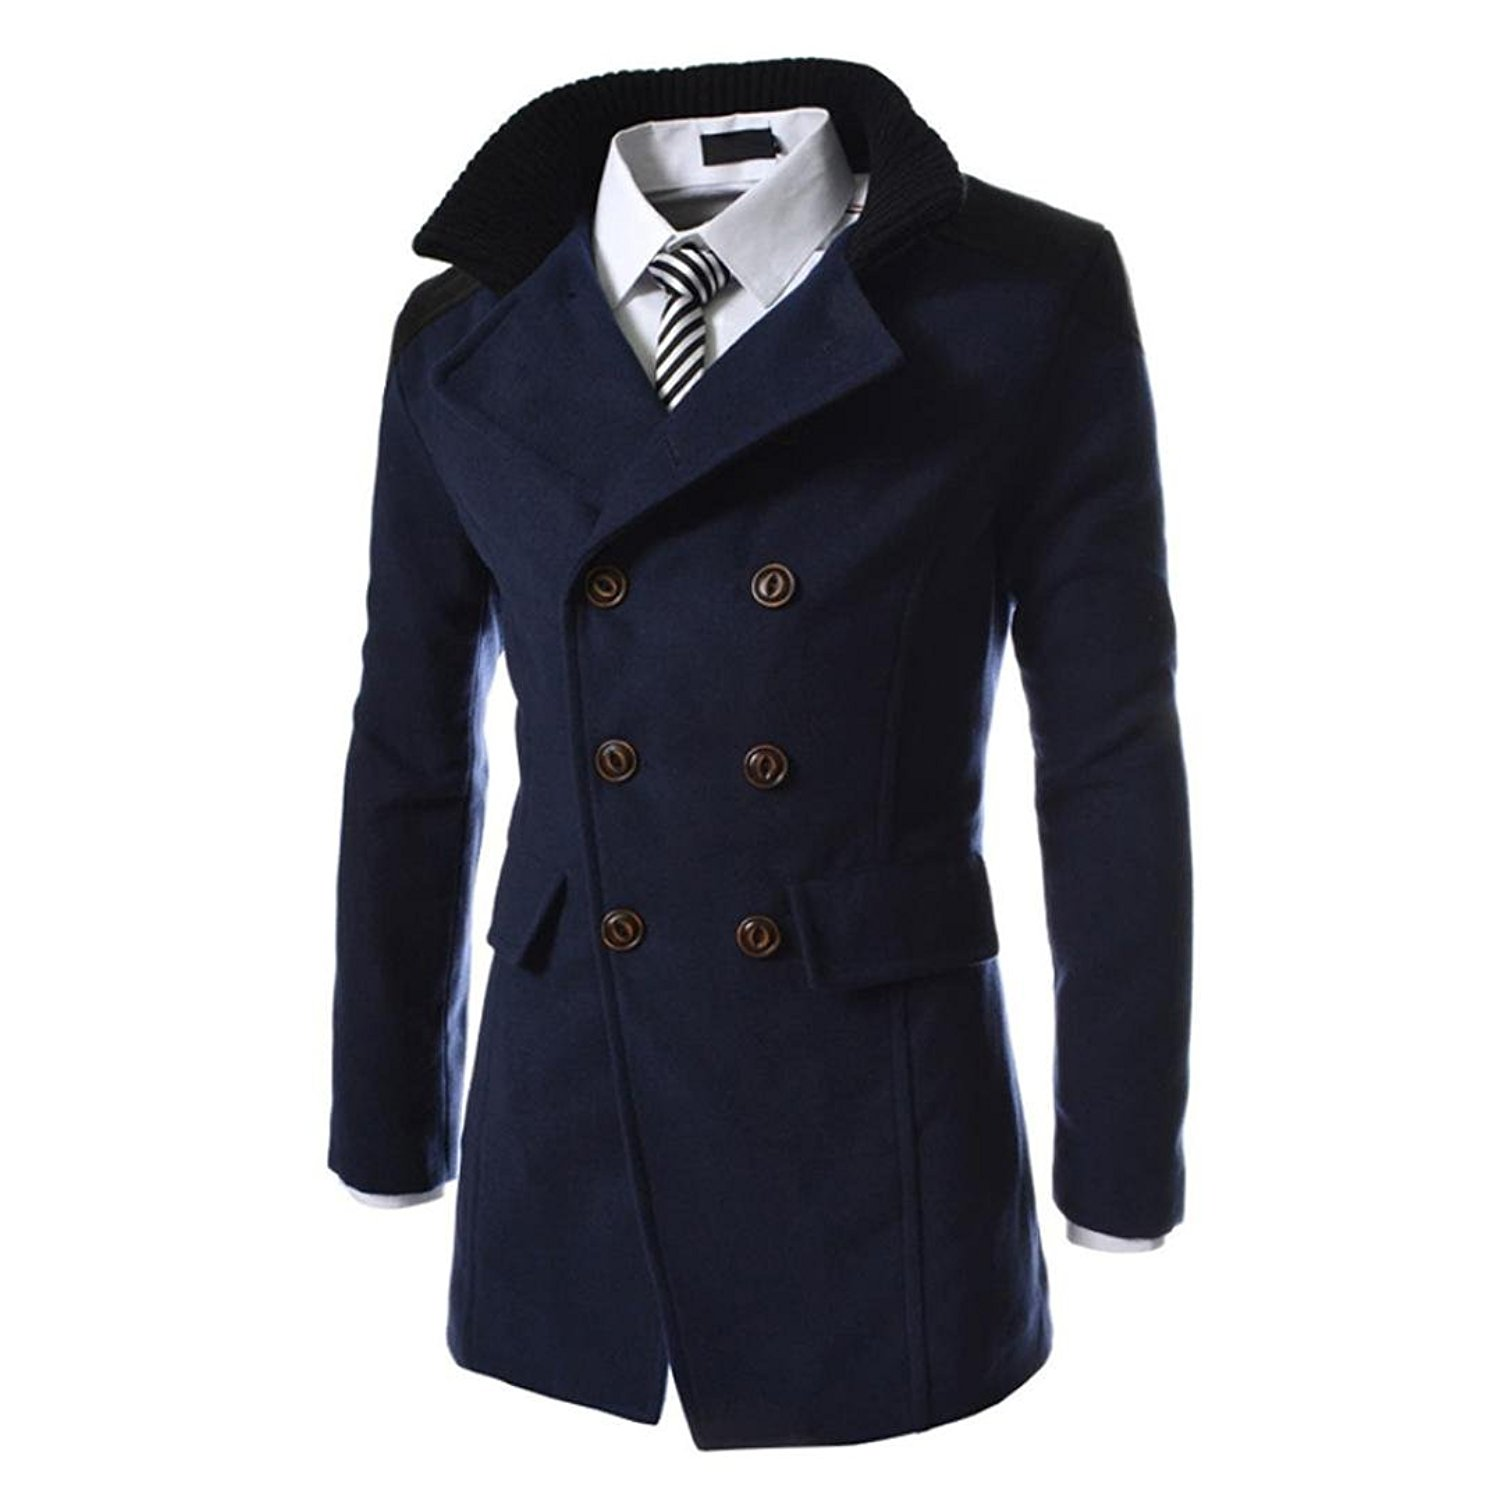 f19178cd3aa7 Get Quotations · Amiley Overcoat Men, Mens Warm Winter Pea Coat Double  Breasted Jacket Overcoat